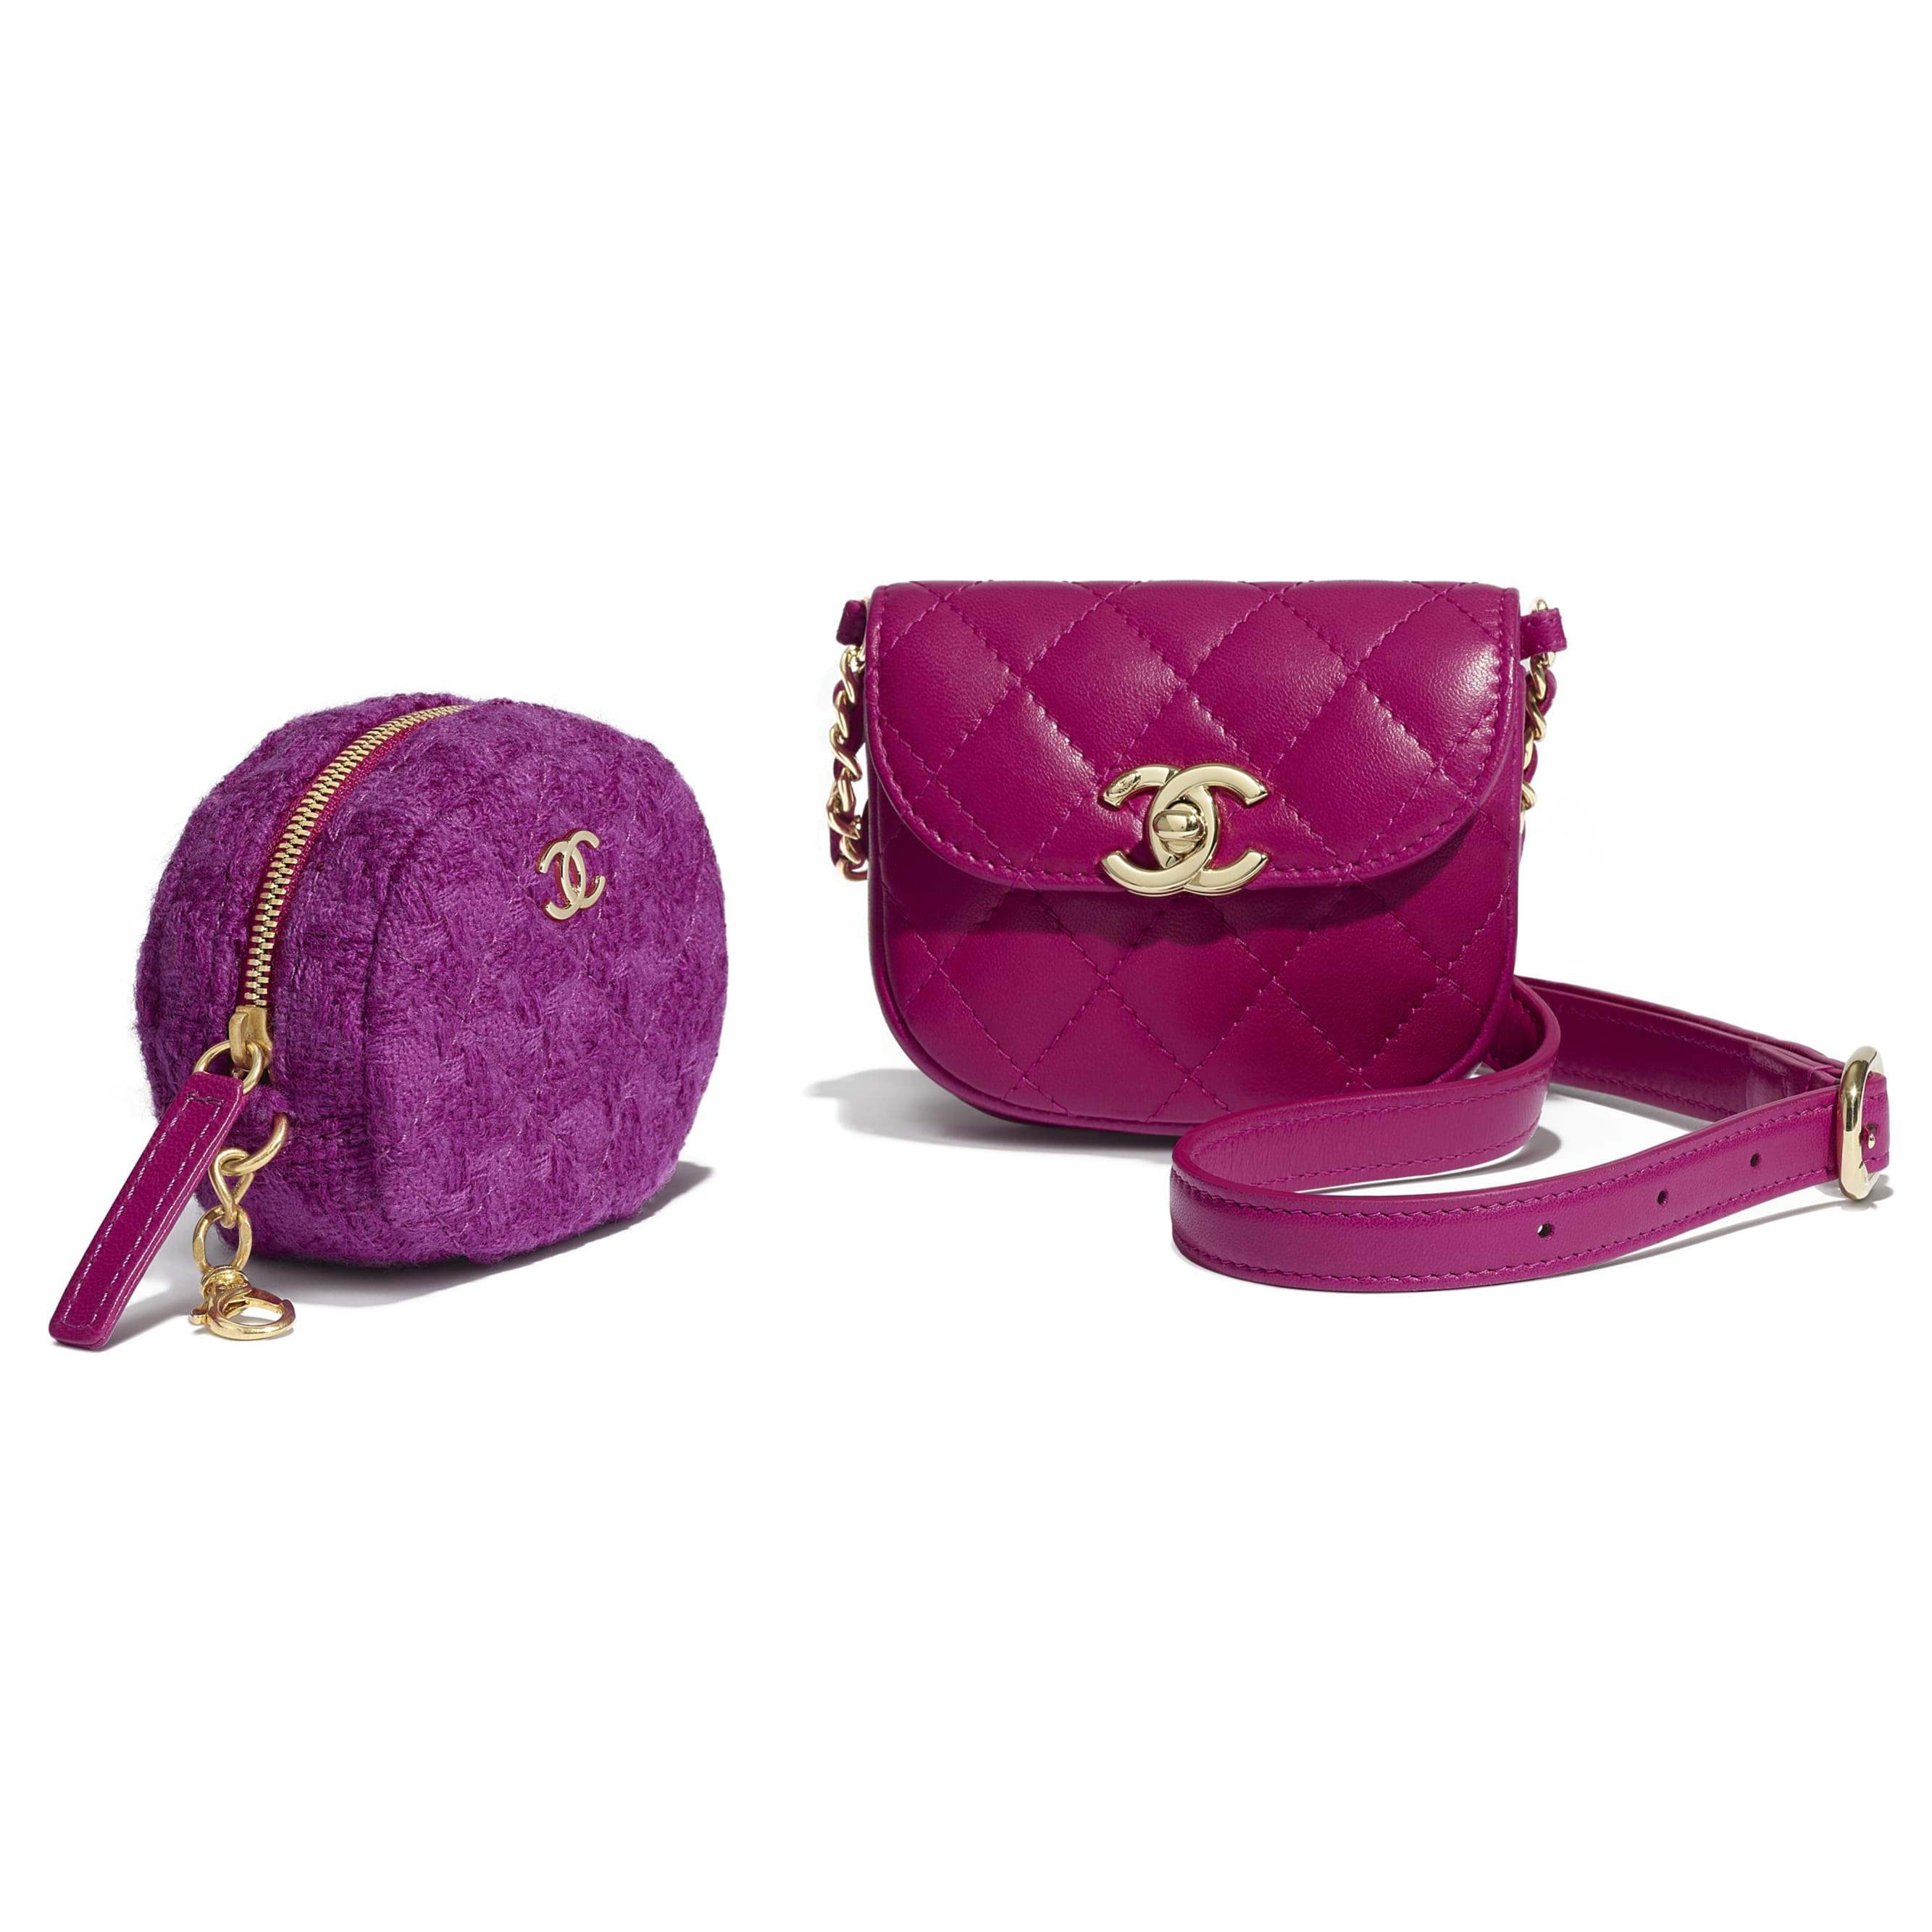 Waist Bag & Coin Purse - Fuchsia - Lambskin, Tweed & Gold-Tone Metal - Extra view - see standard sized version